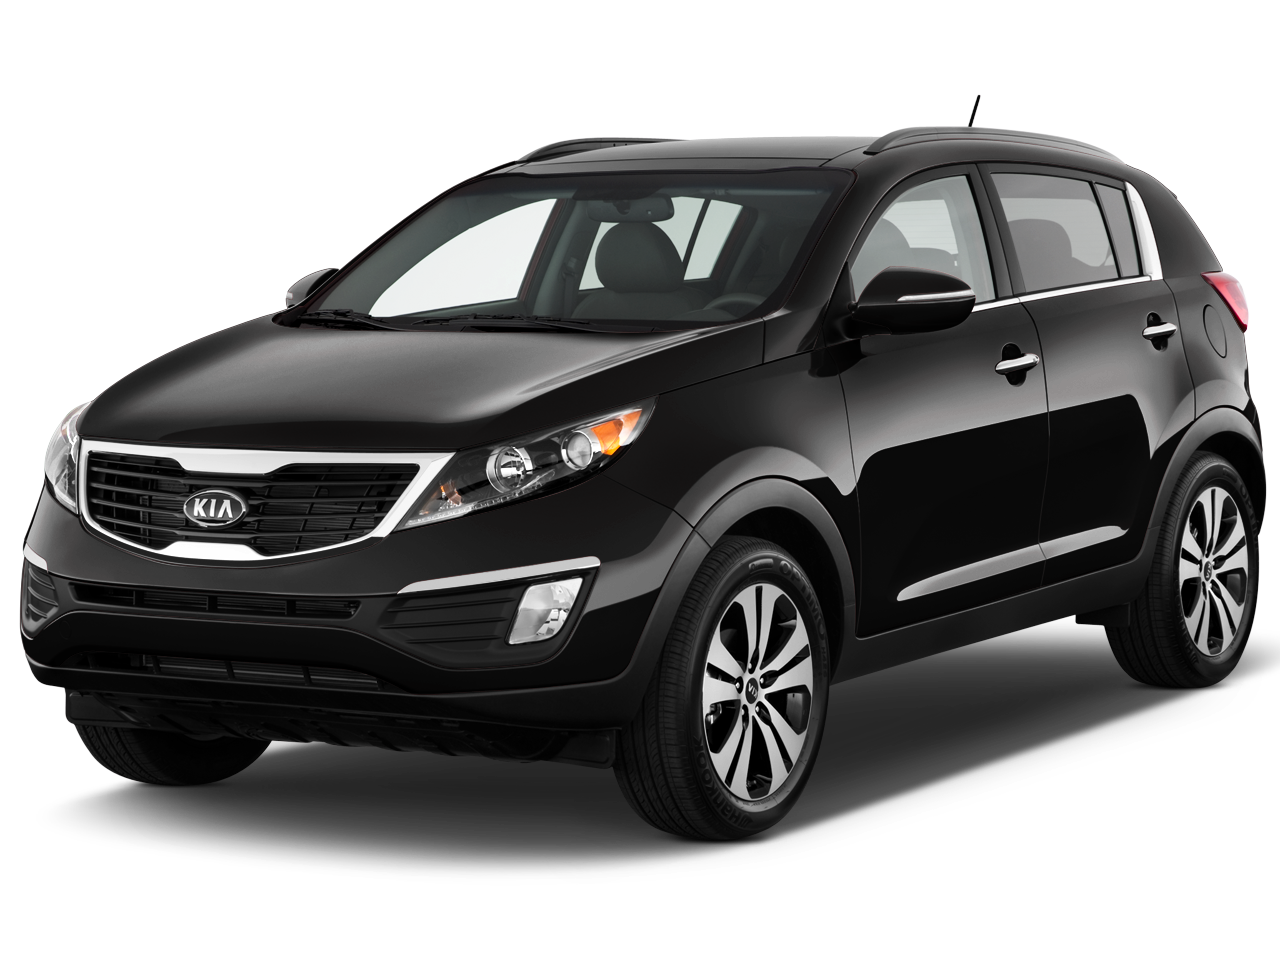 Used One-Owner 2014 Kia Sportage LX